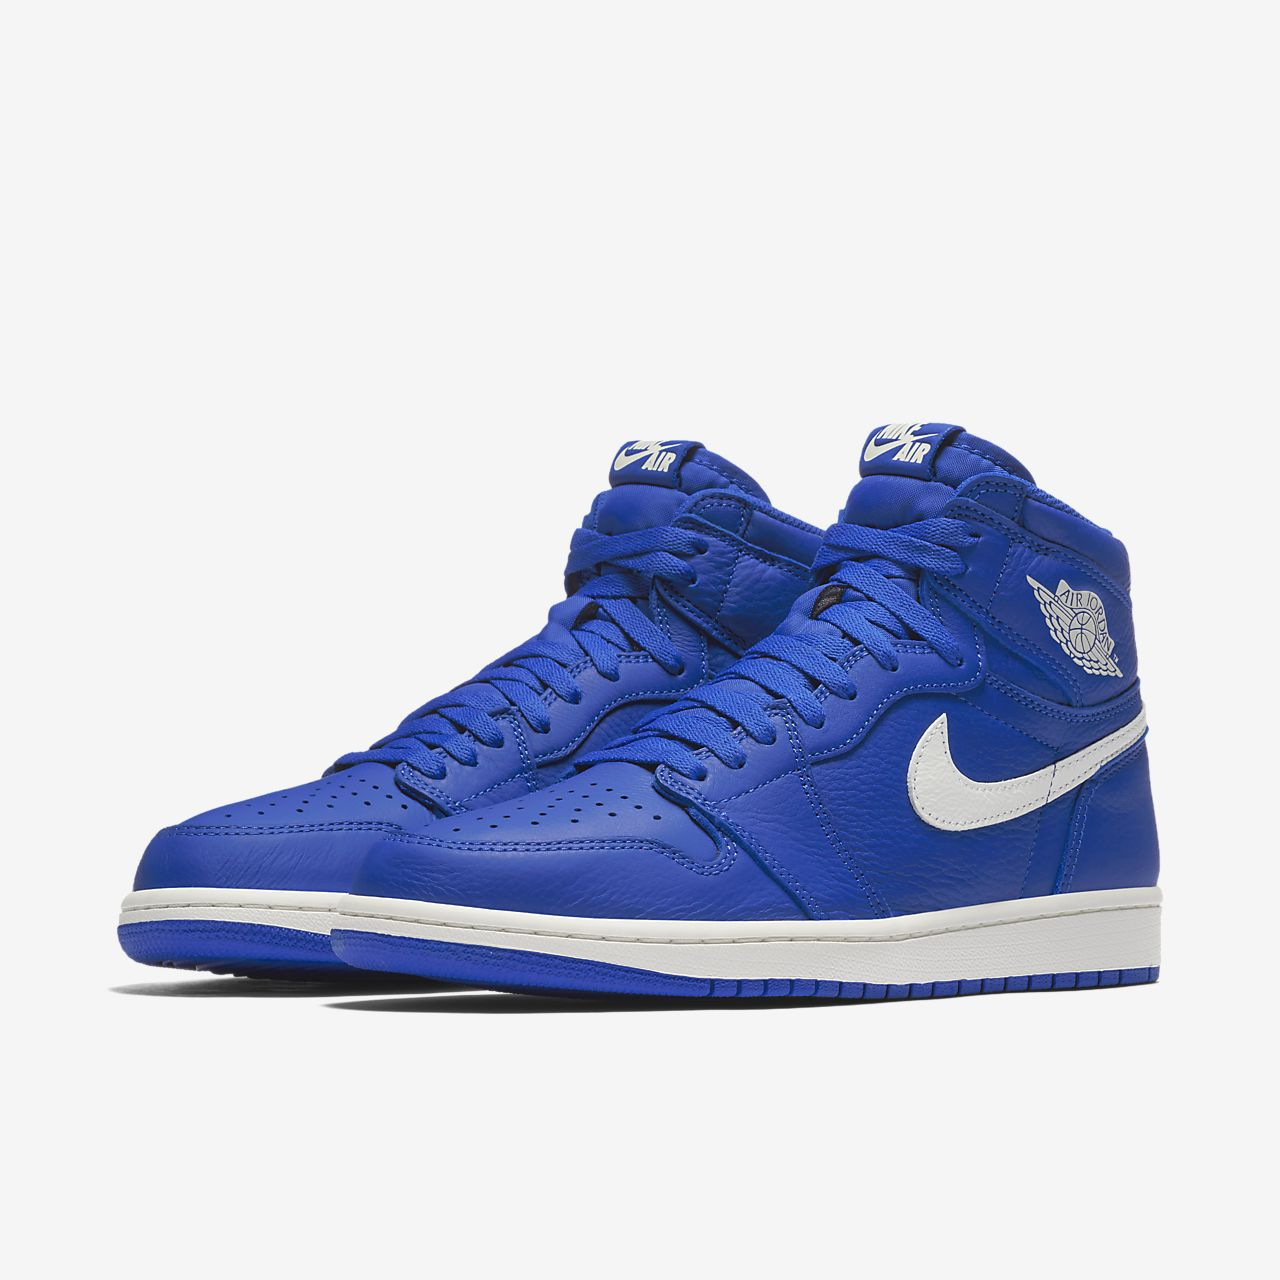 d2cfcf9f1a7f Air Jordan 1 Retro High OG Shoe. Nike.com LU